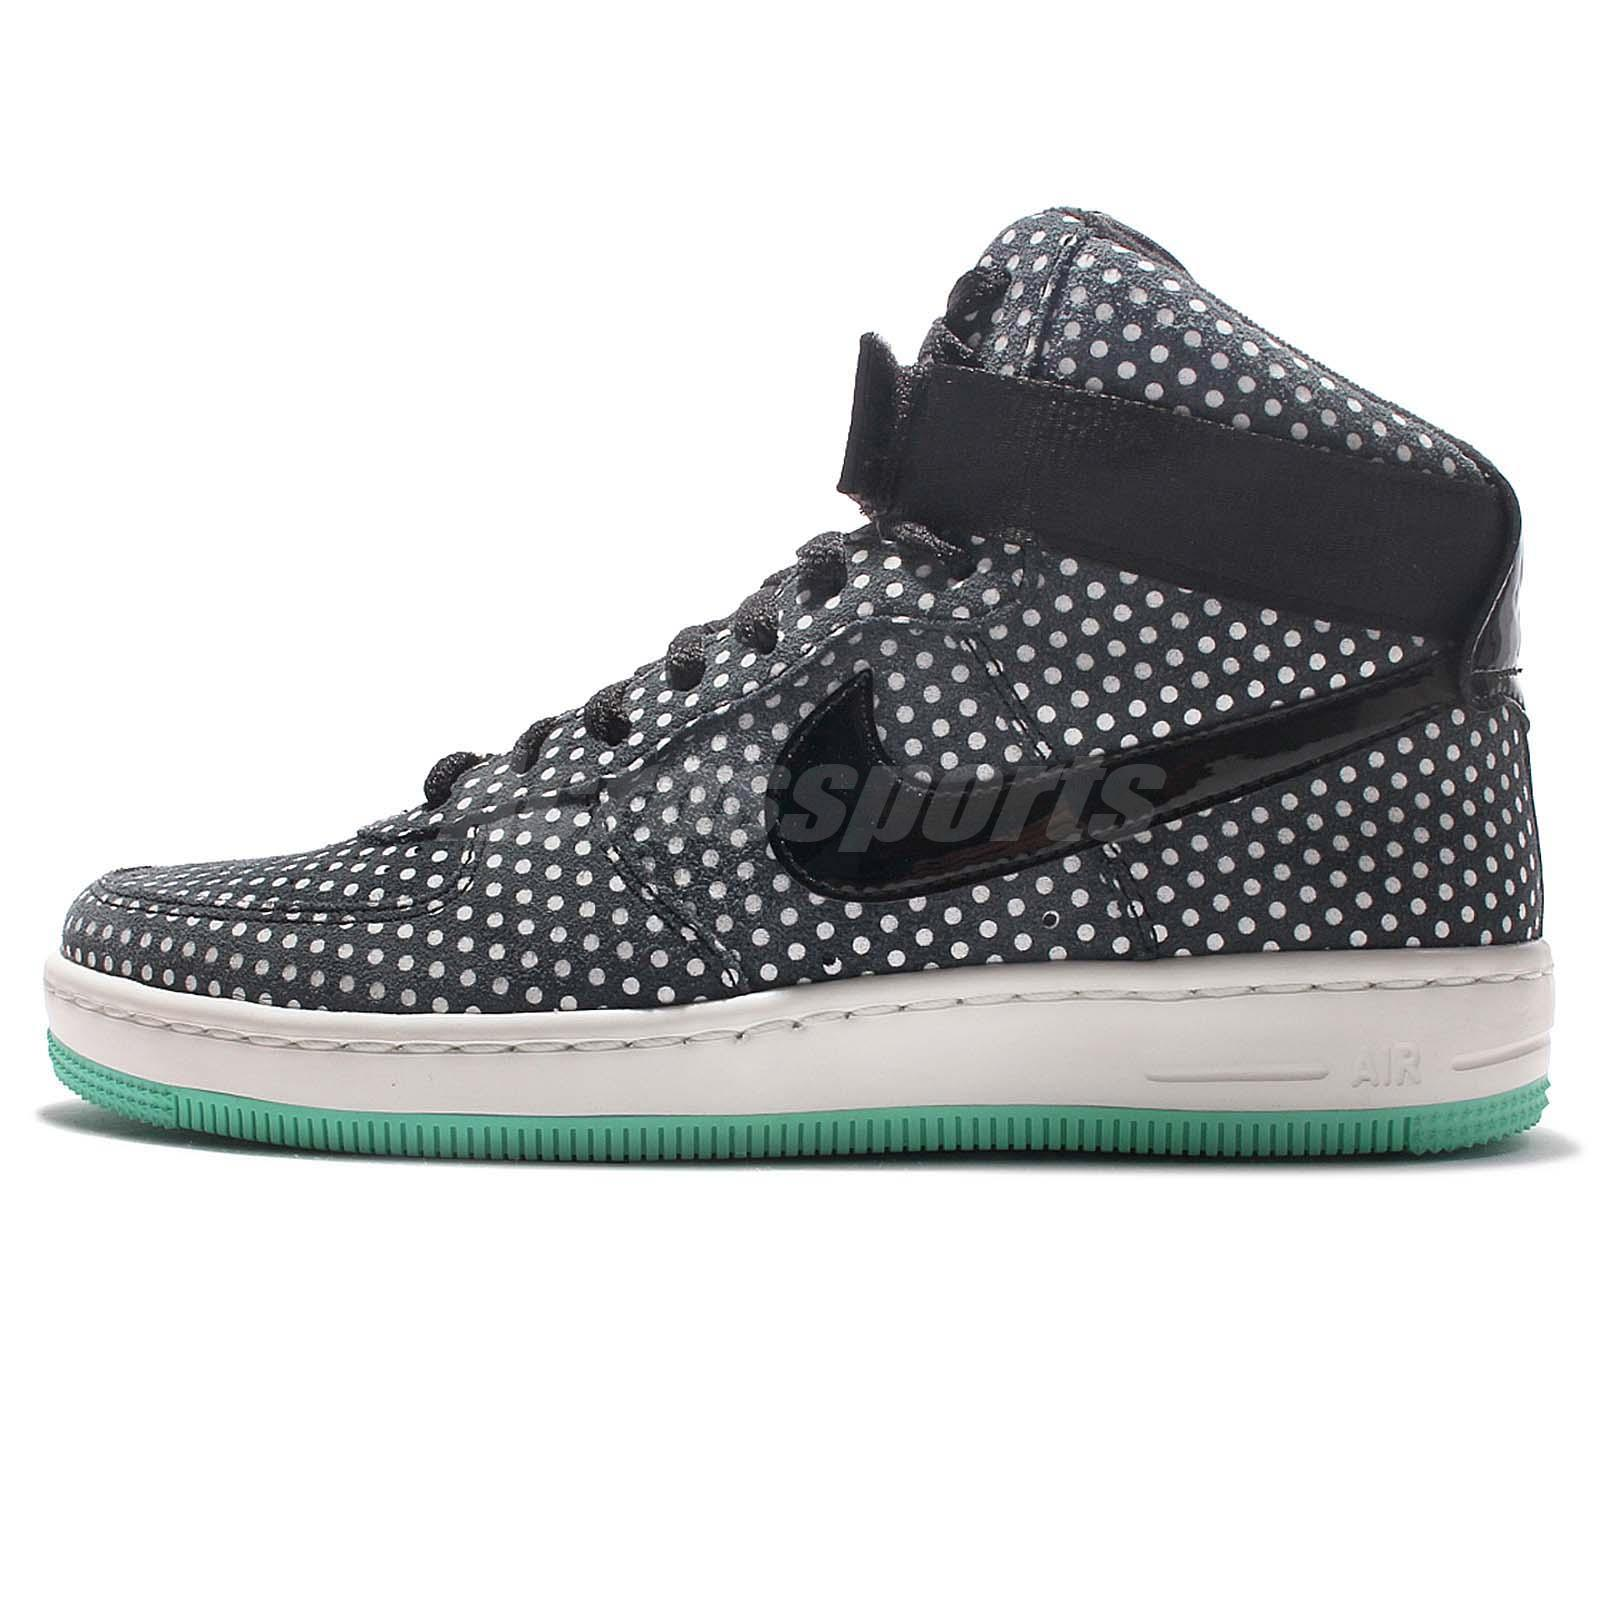 Nike Wmns AF1 Ultra Force Mid Air Force 1 Black Sail Polka Dots Women 654851011